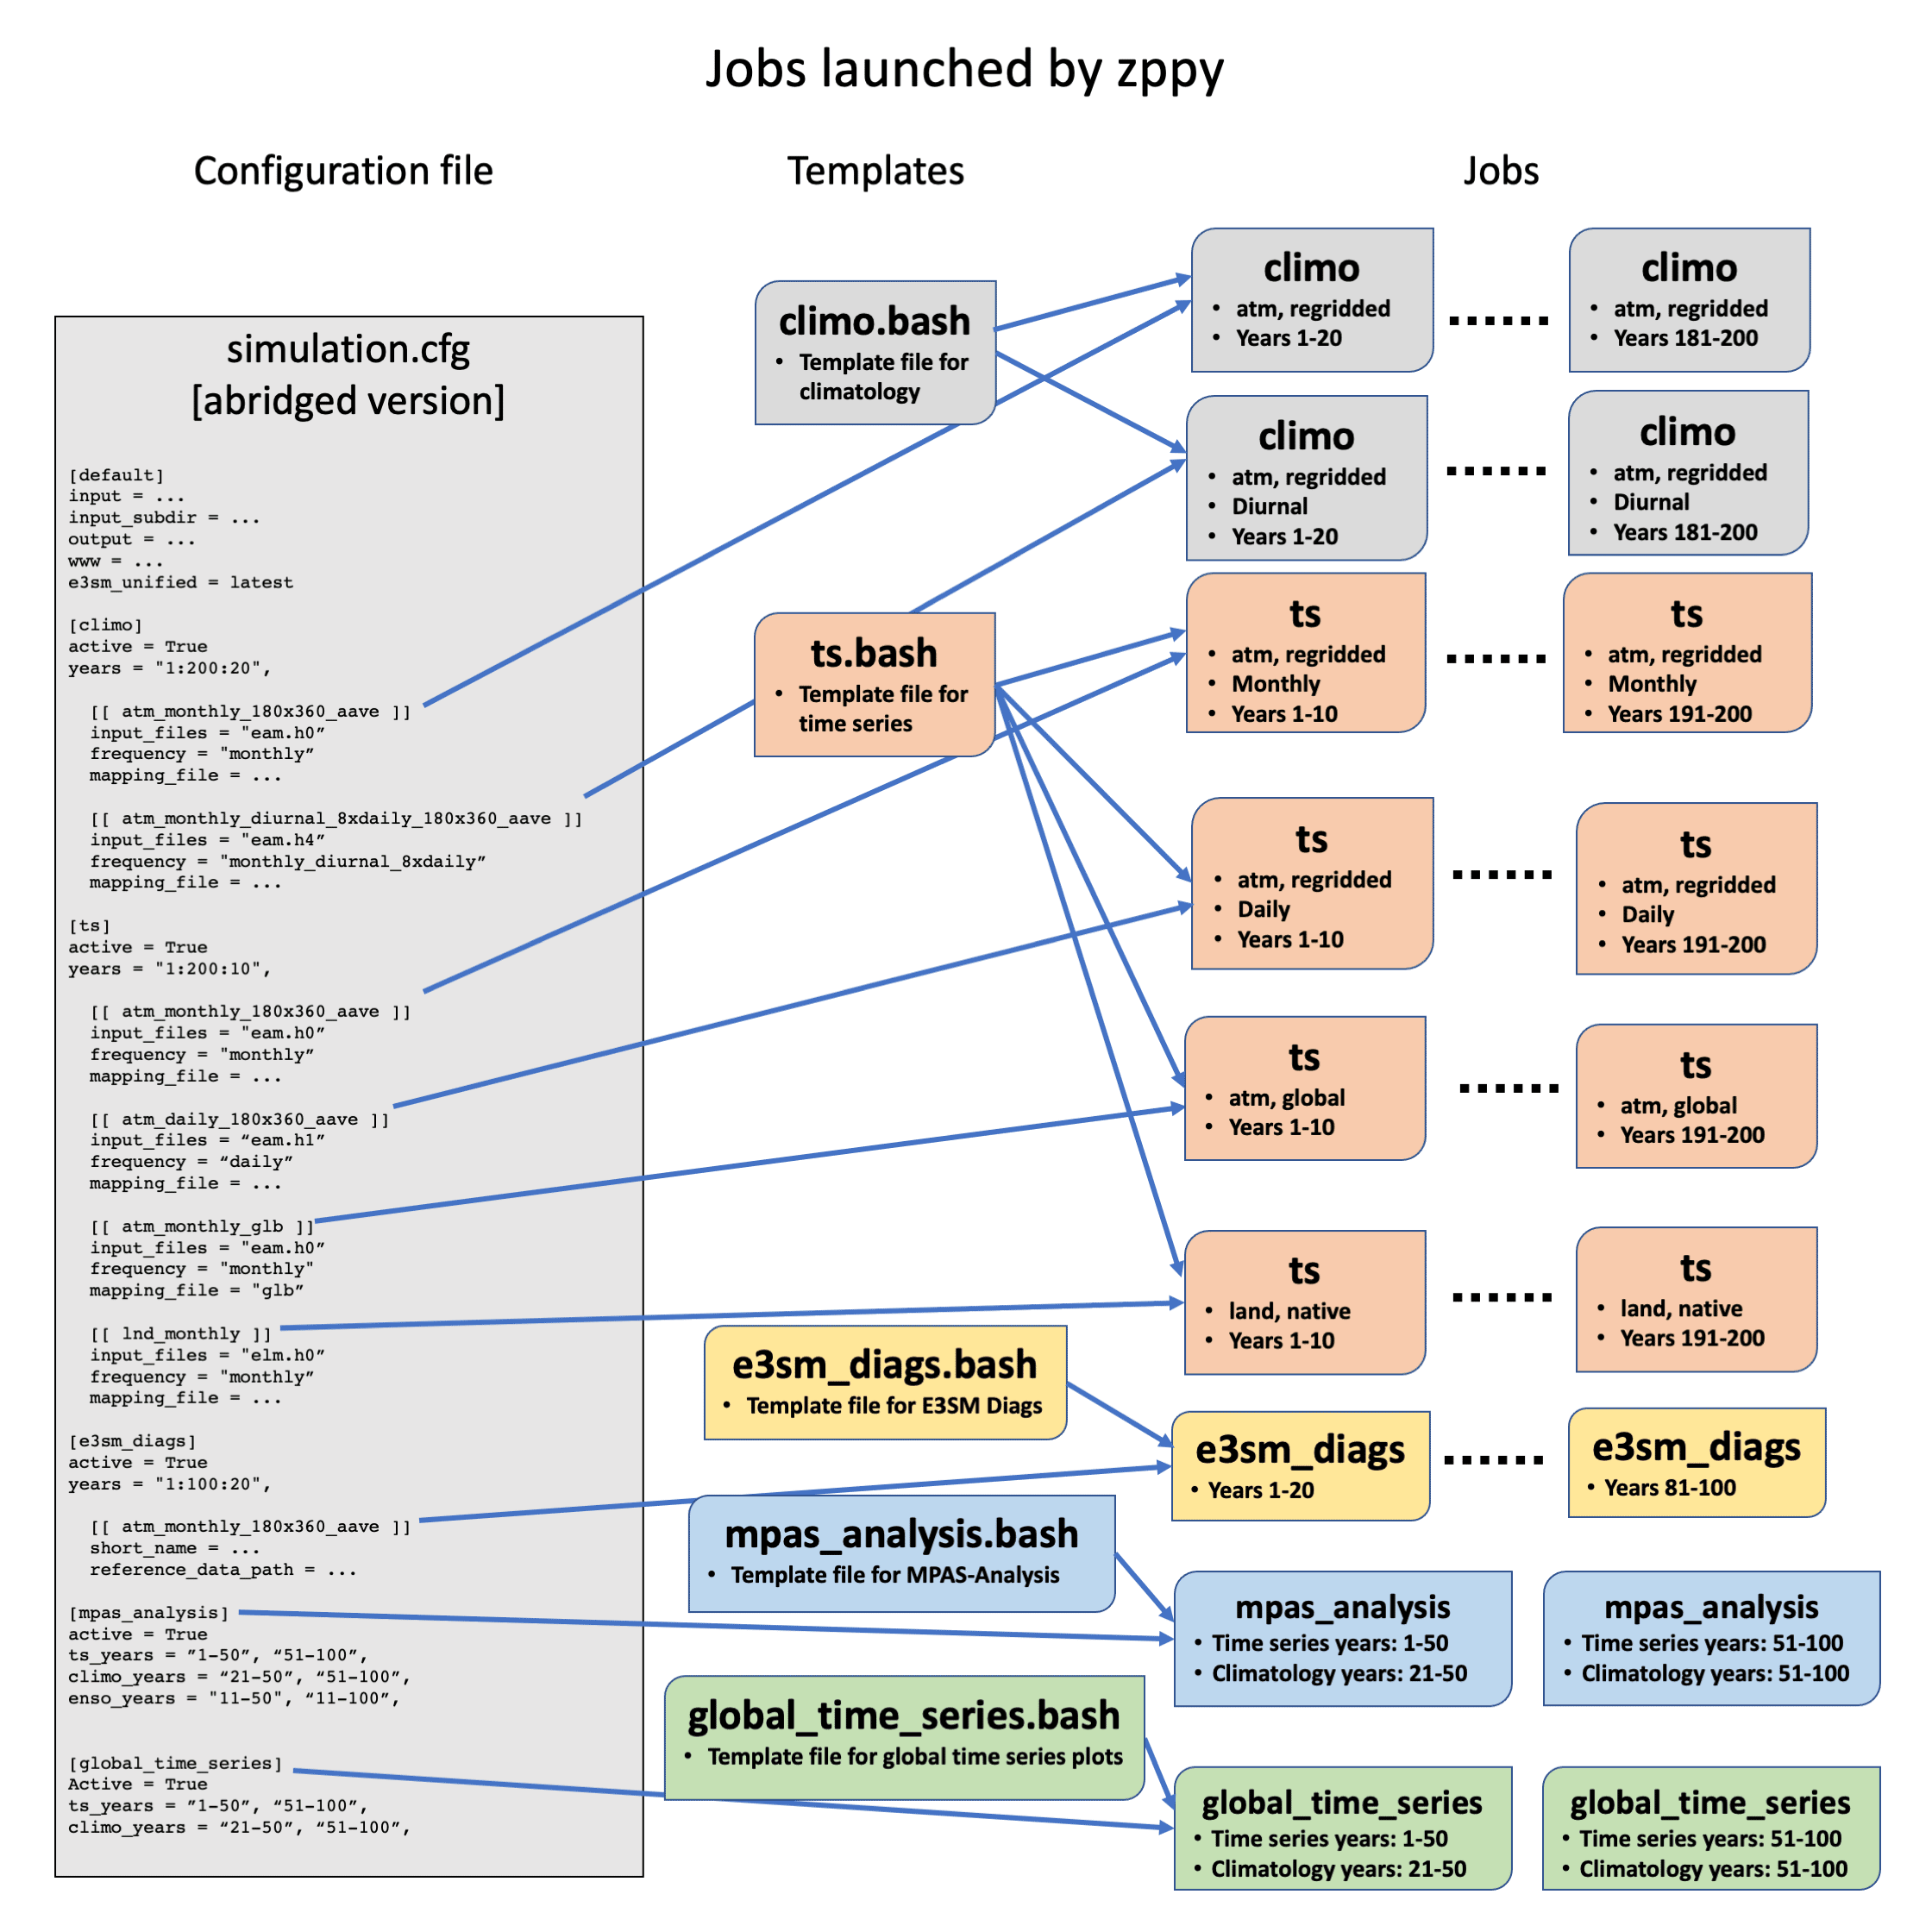 Illustration of how zppy uses sections of the configuration file and bash/Jinja2 templates to launch various jobs.